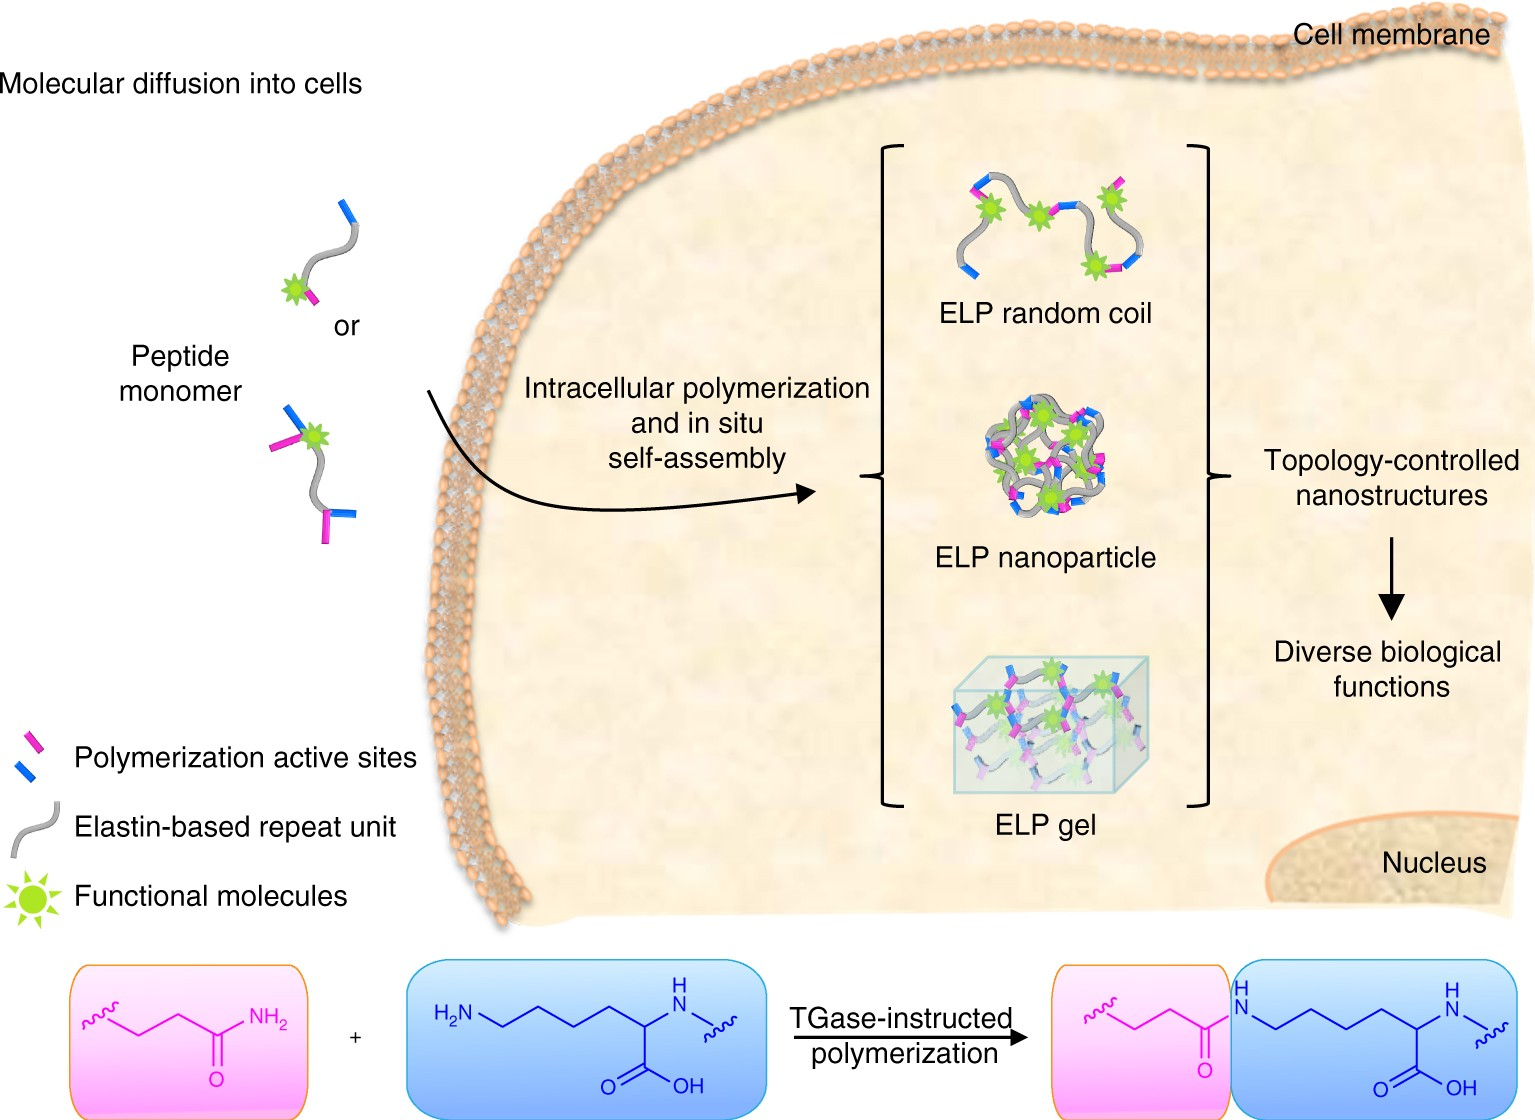 Intracellular Construction Of Topology Controlled Polypeptide Molecular Self Assembly In Nanotechnology Nanostructures With Diverse Biological Functions Nature Communications